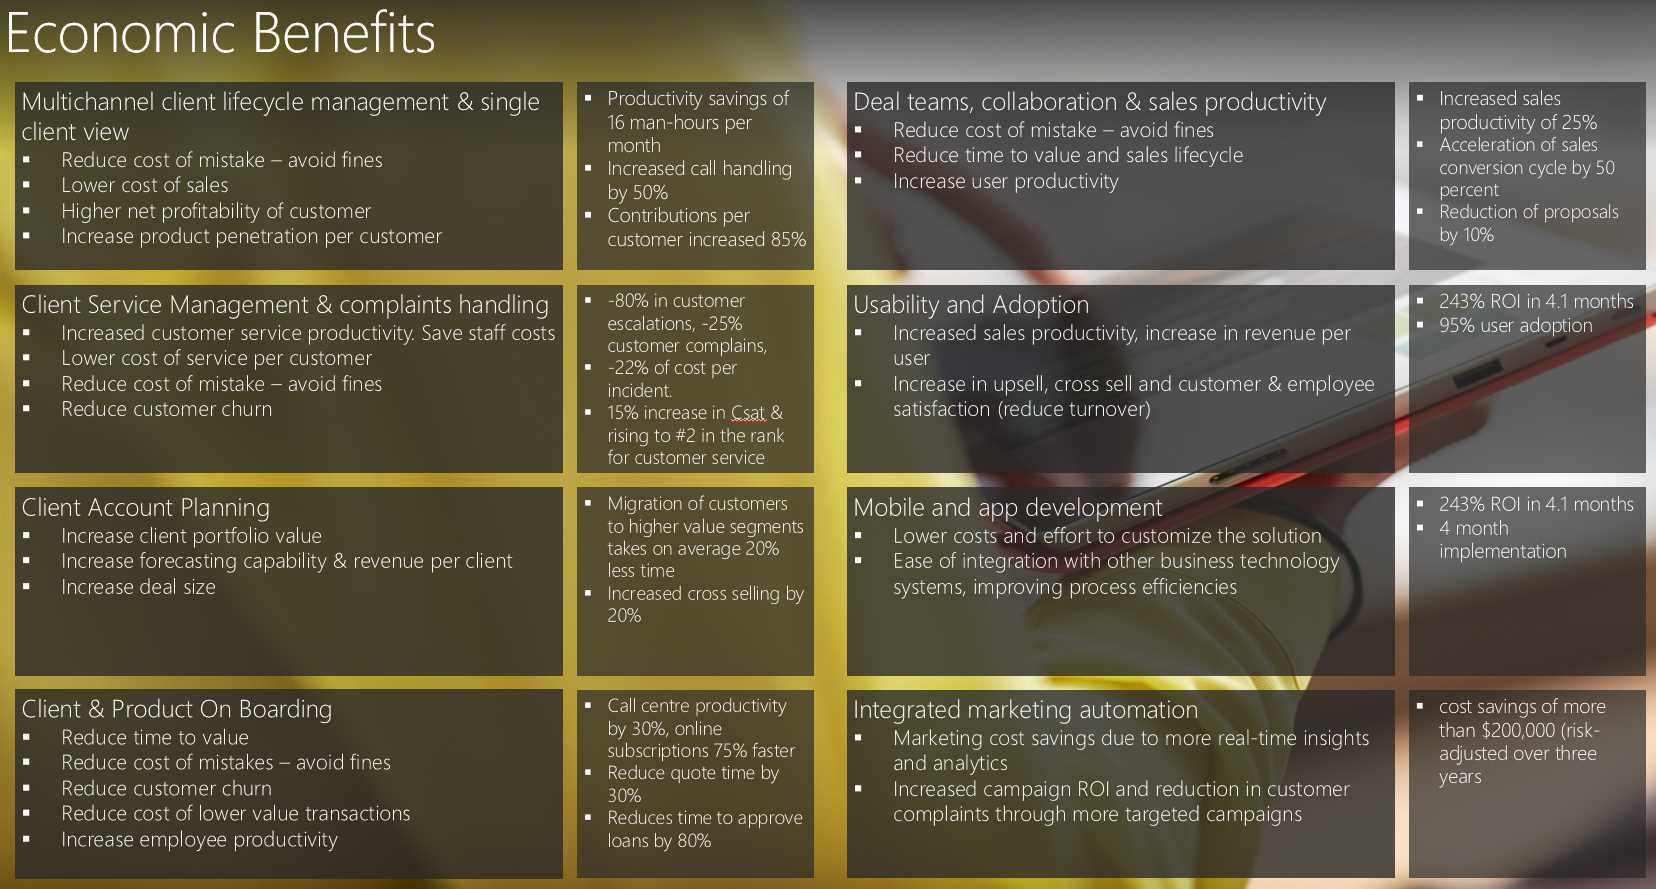 Business value and economic benefits with Microsoft Dynamics